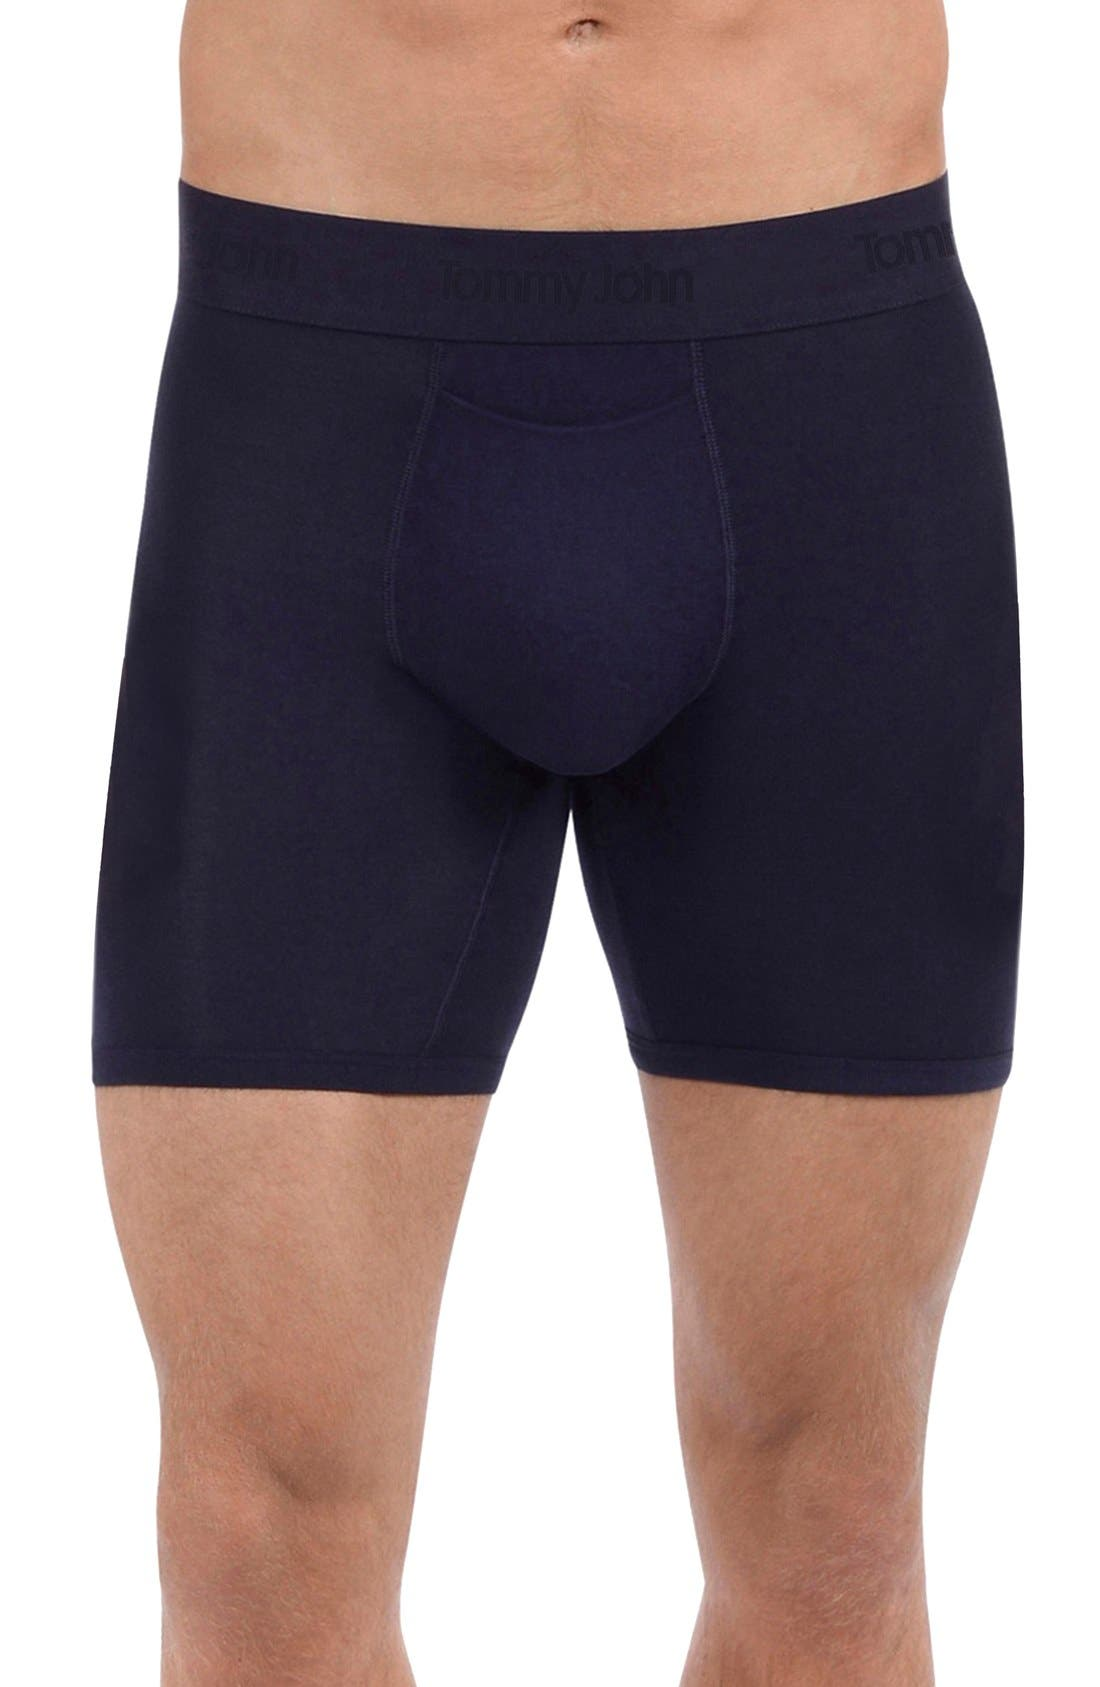 Alternate Image 1 Selected - Tommy John 'Second Skin' Boxer Briefs